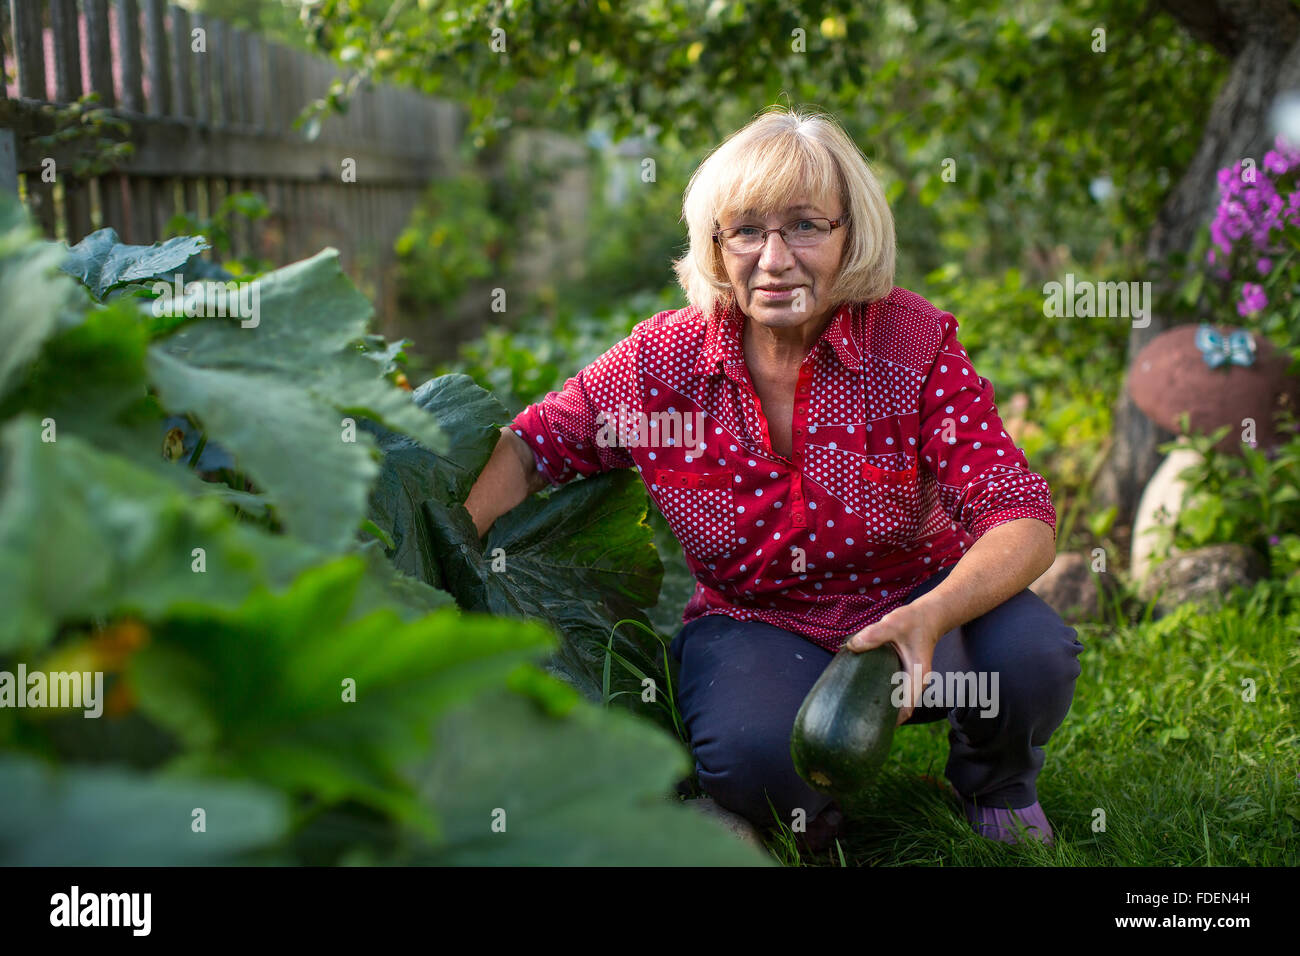 Woman harvesting zucchini in his garden. - Stock Image